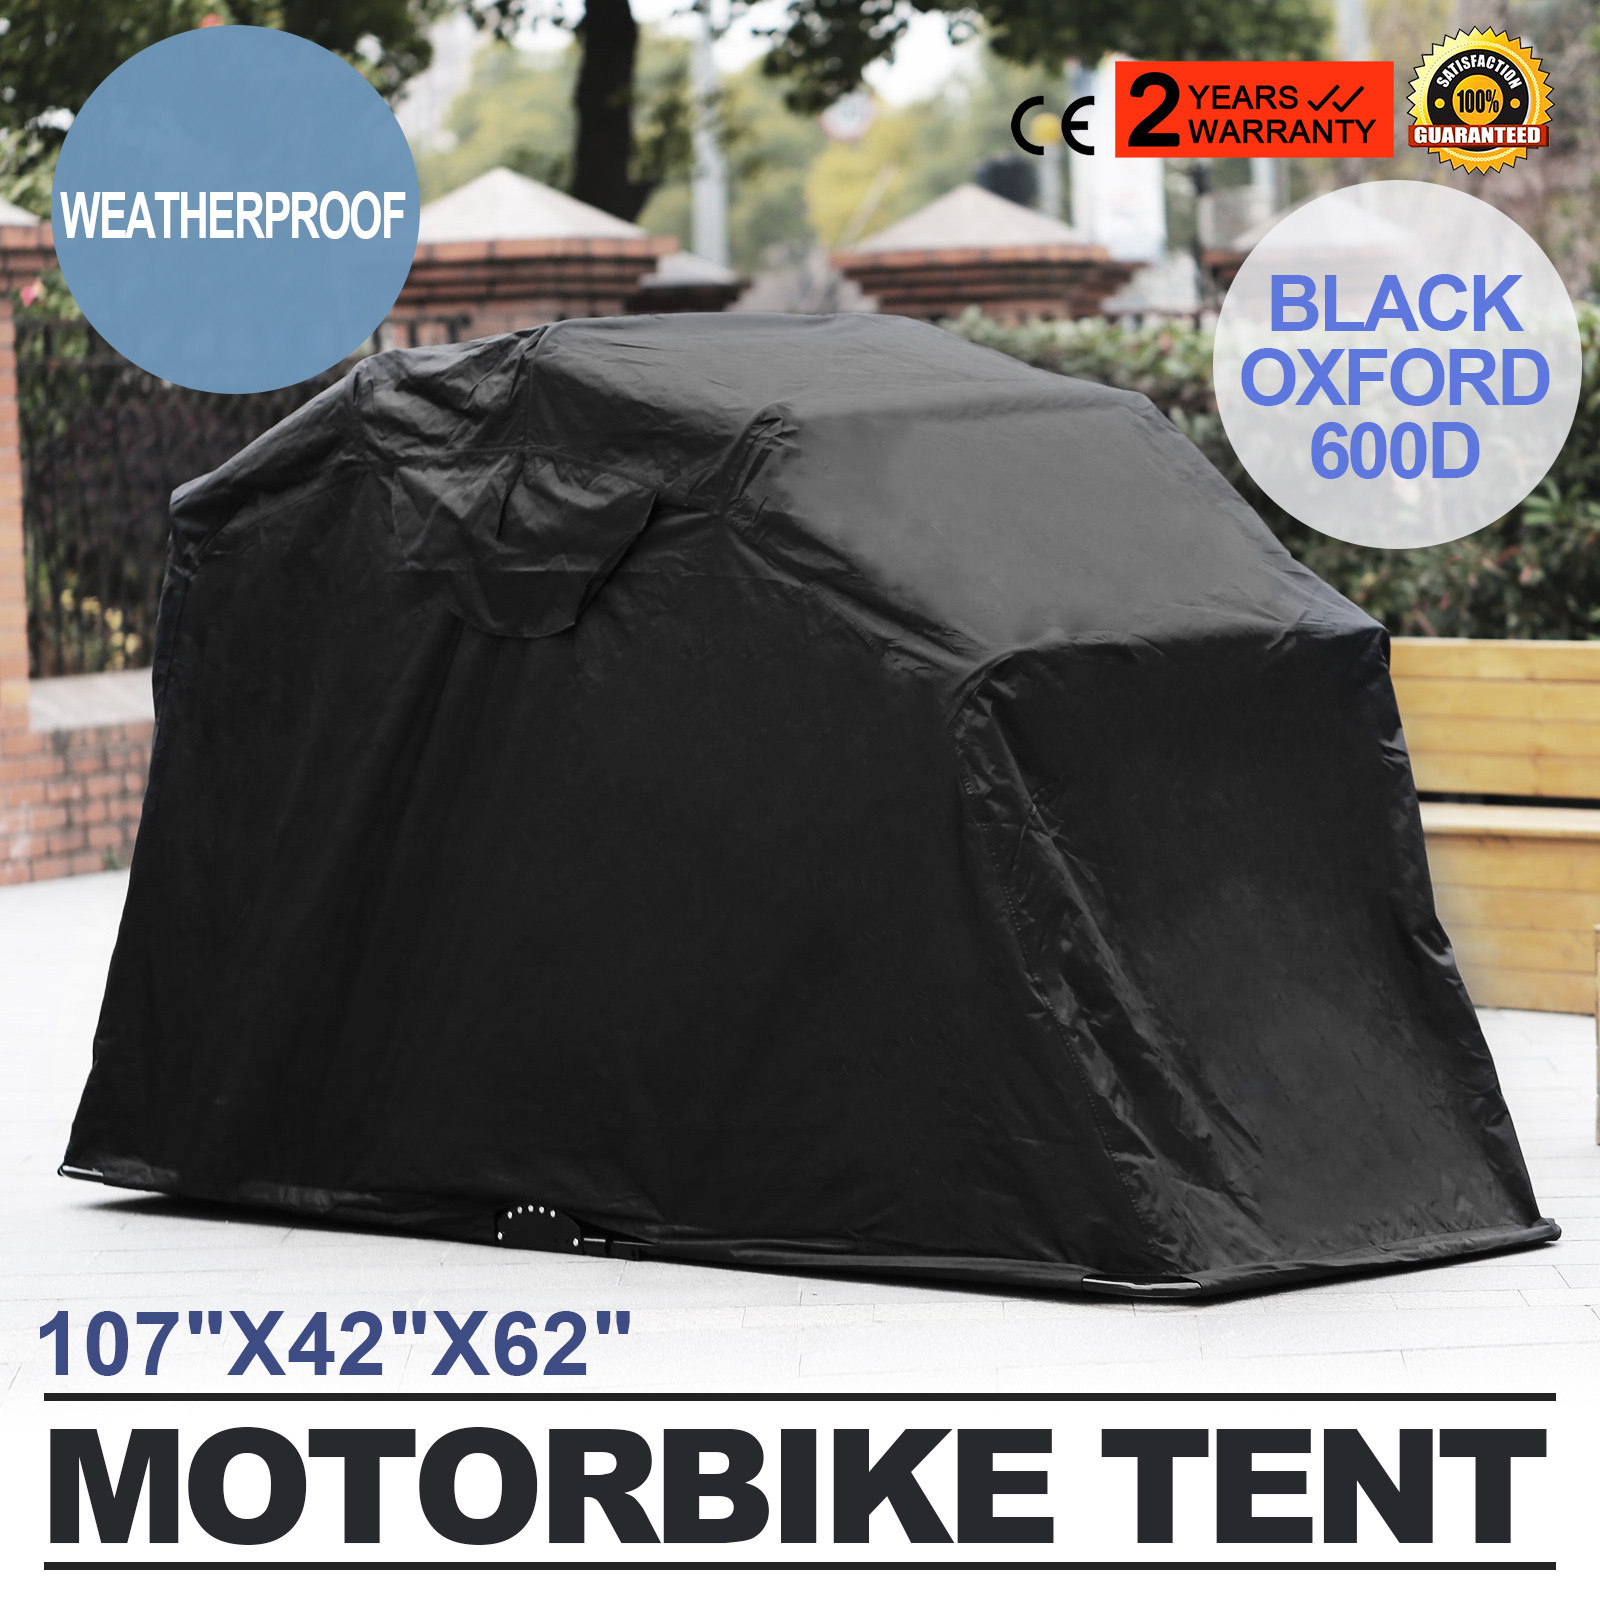 Details about Motorcycle Cover Retractable Shelter Tent Garage Trail Waterproof Outdoor HOT & Motorcycle Cover Retractable Shelter Tent Garage Trail Waterproof ...